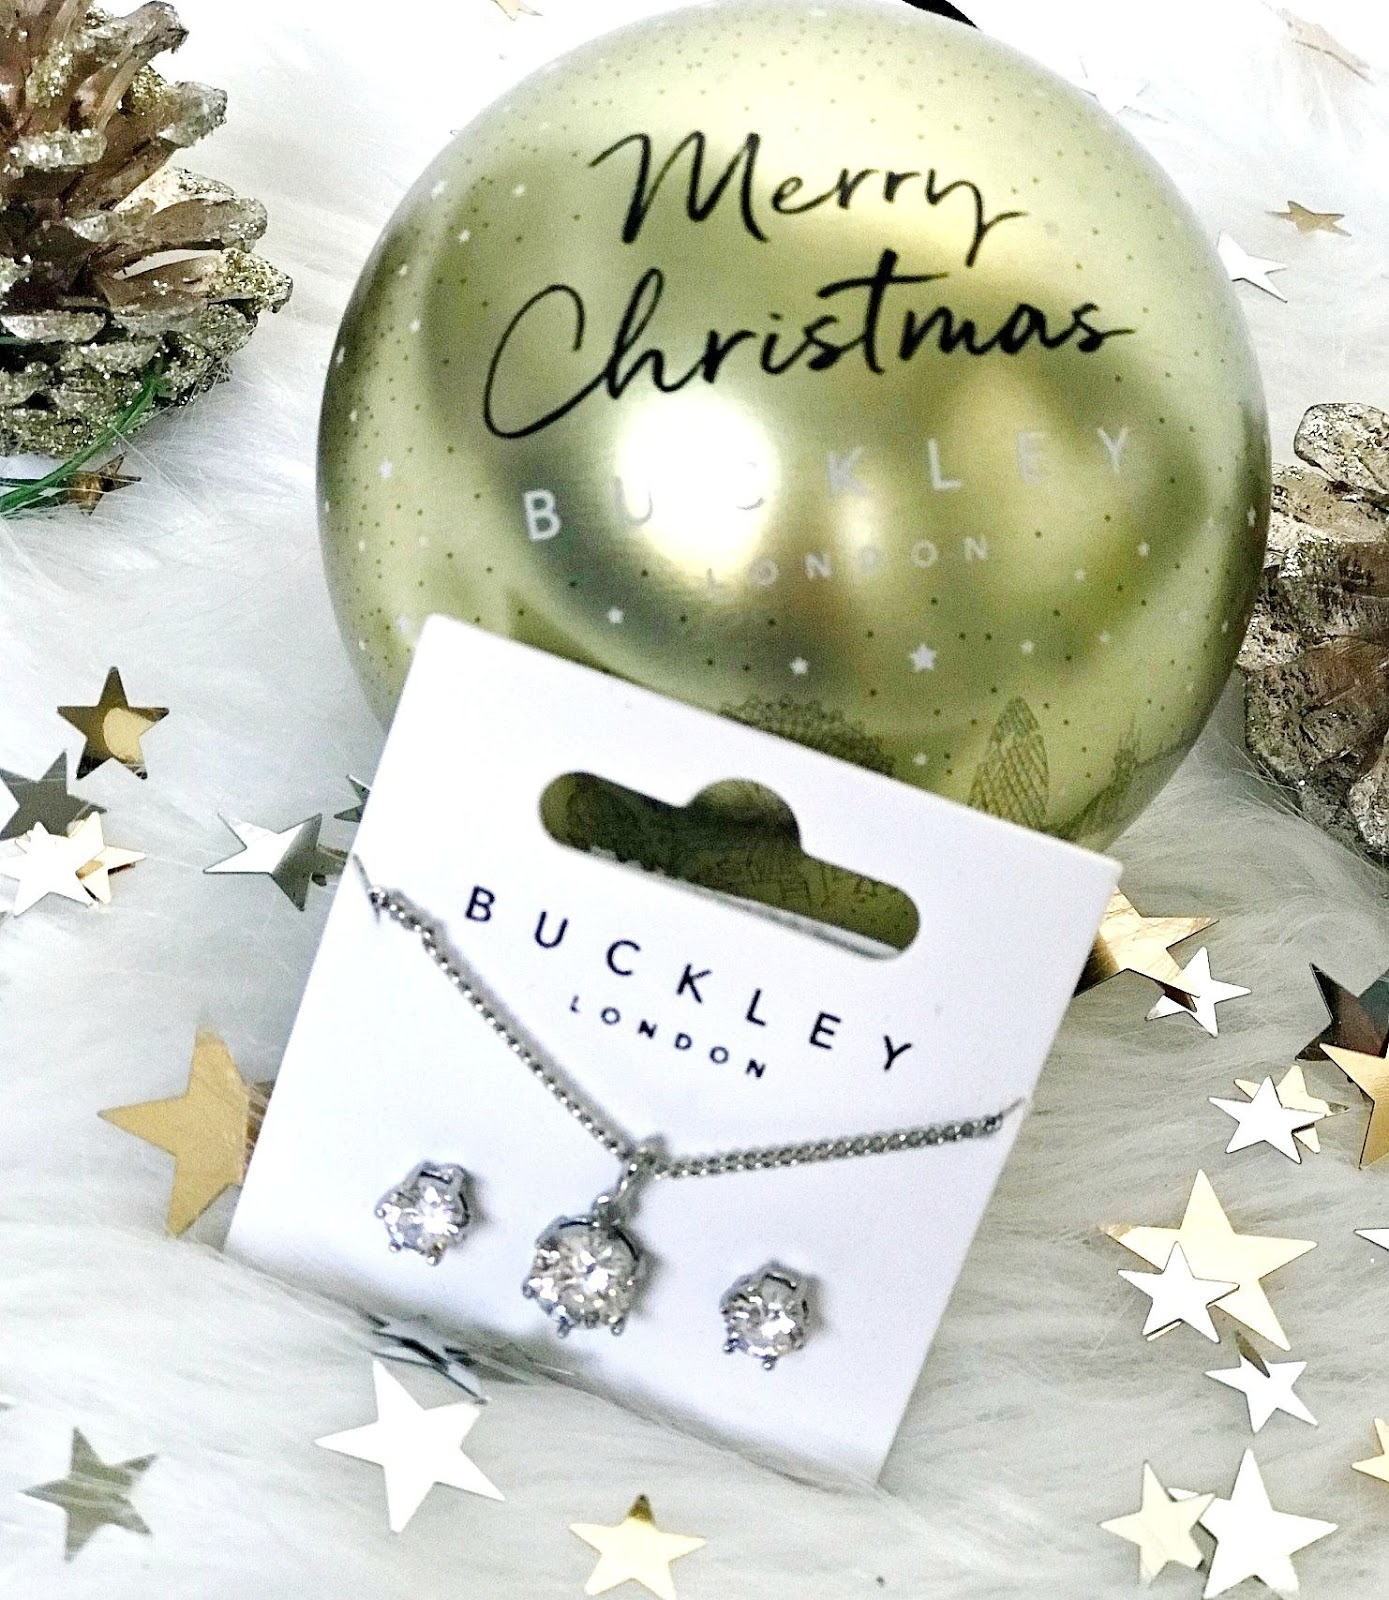 Buckley London Necklace & Earrings Jewellery Set